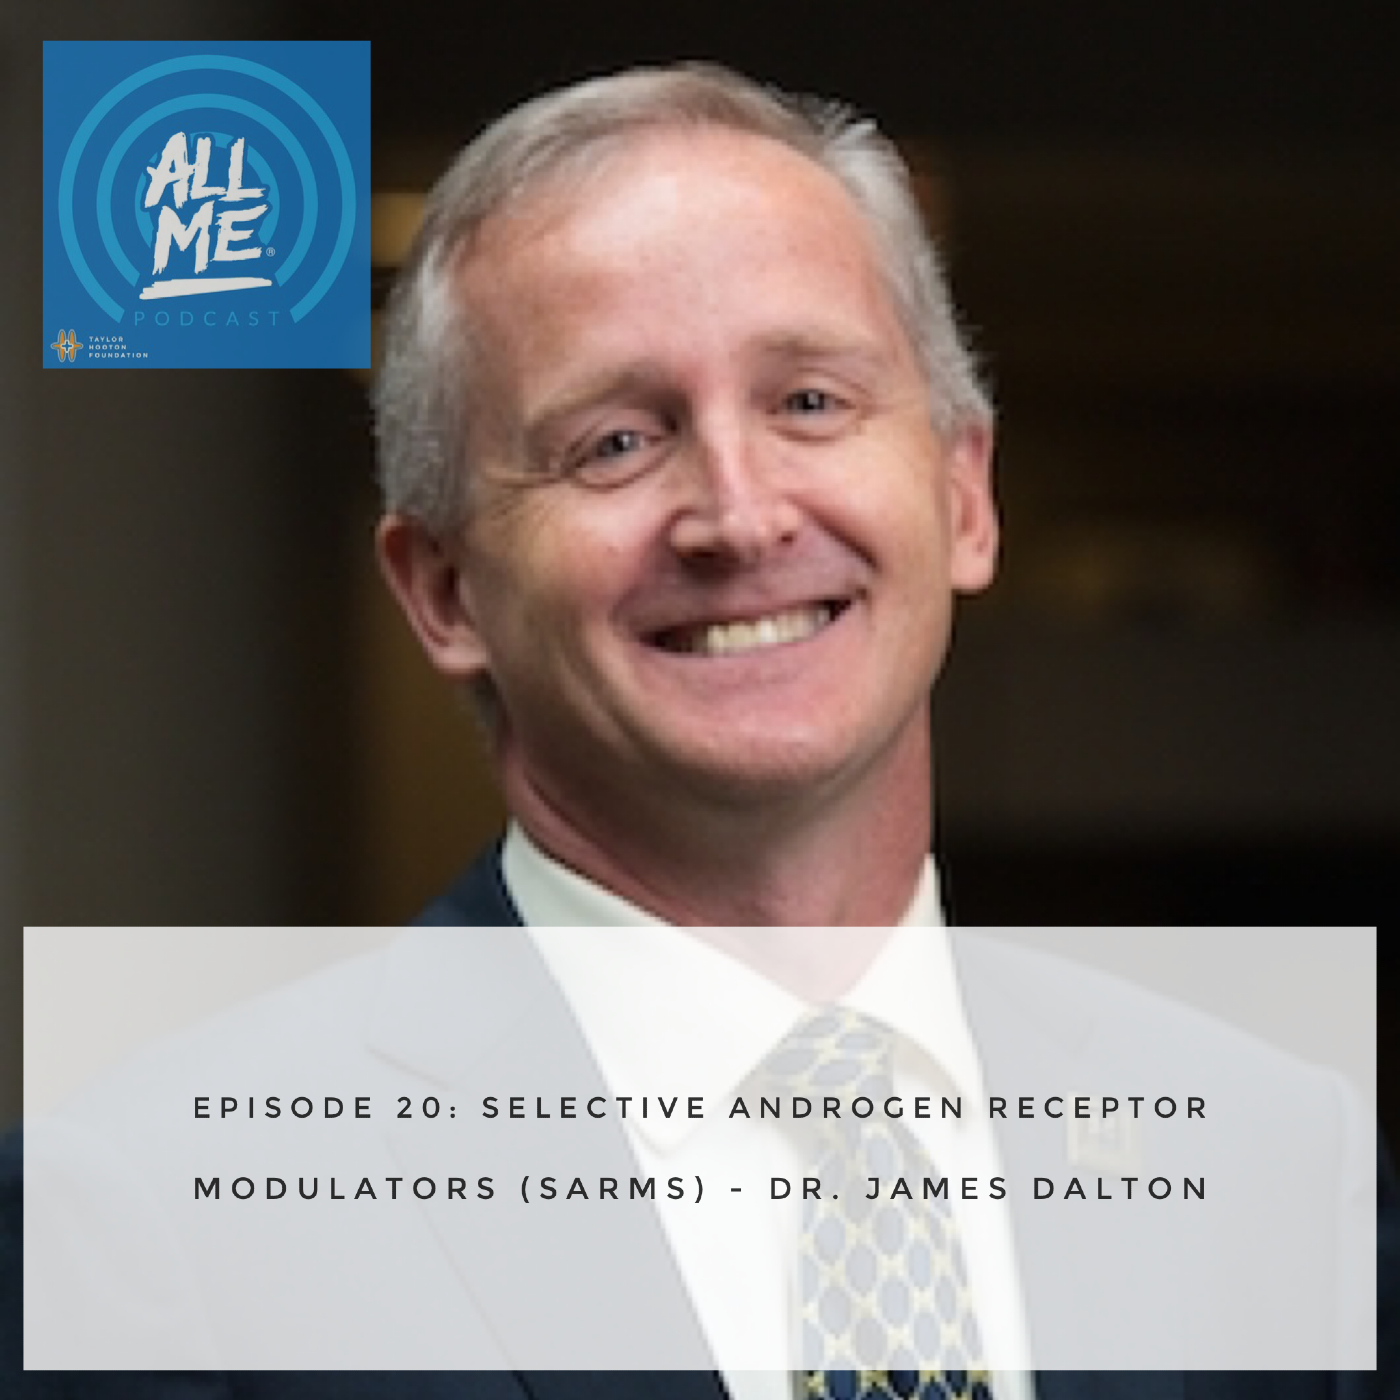 Episode 20: Selective Androgen Receptor Modulators (SARMs) - Dr. James Dalton